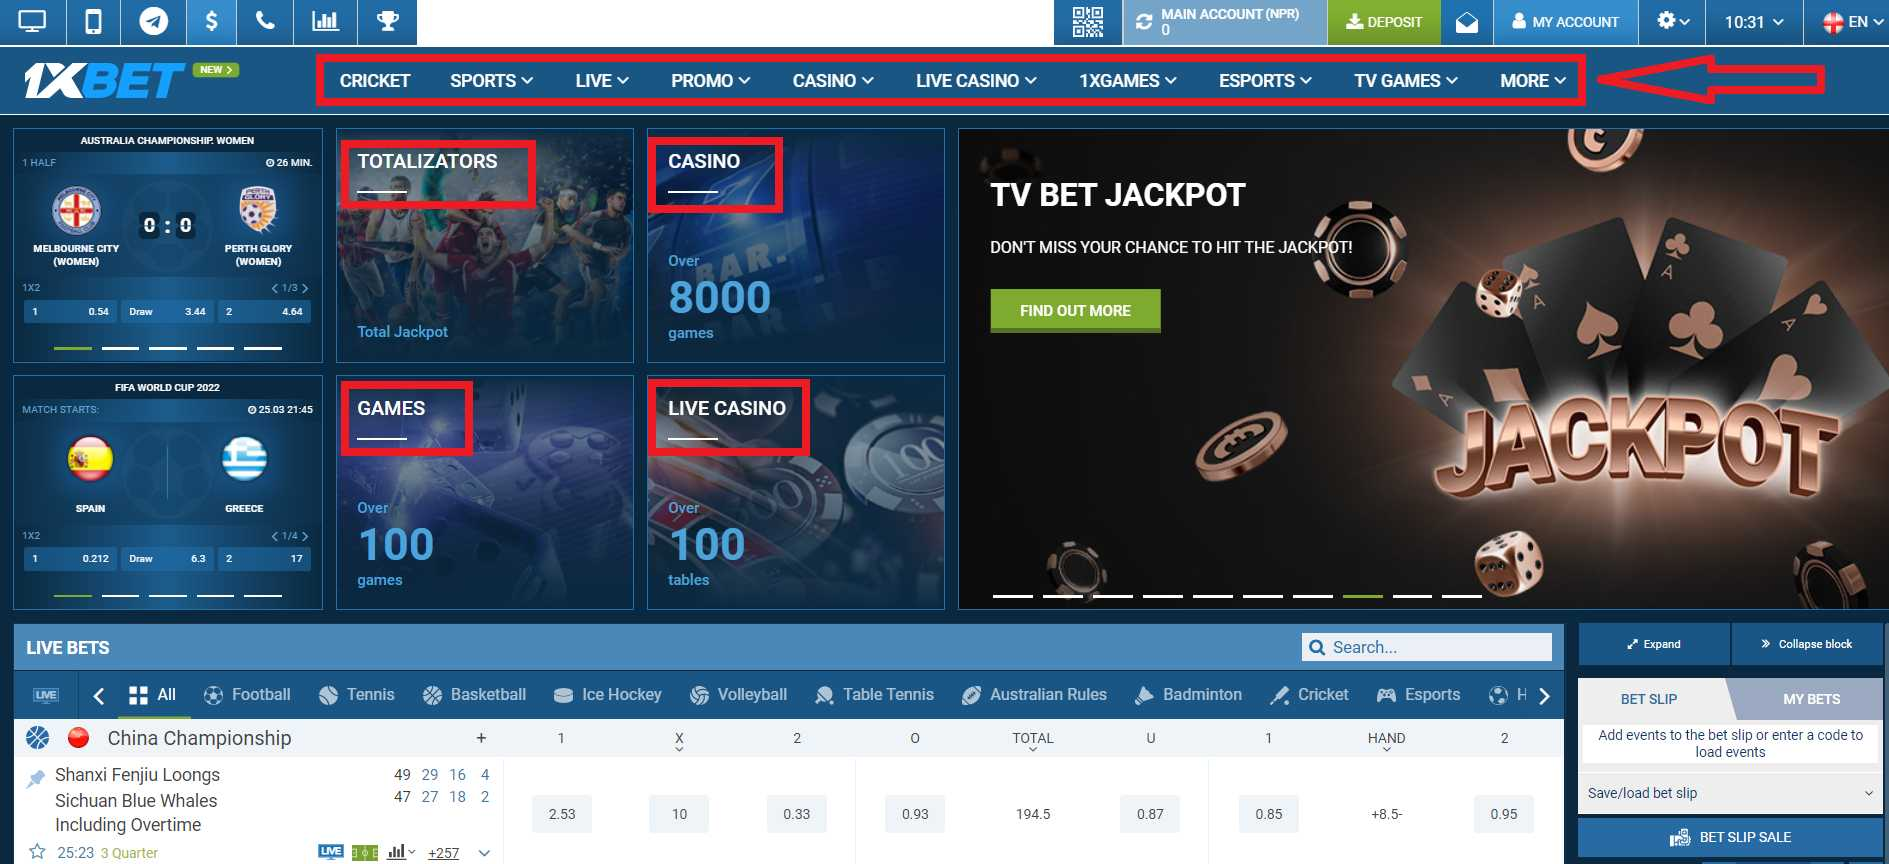 How do players from Nepal register at 1XBET?